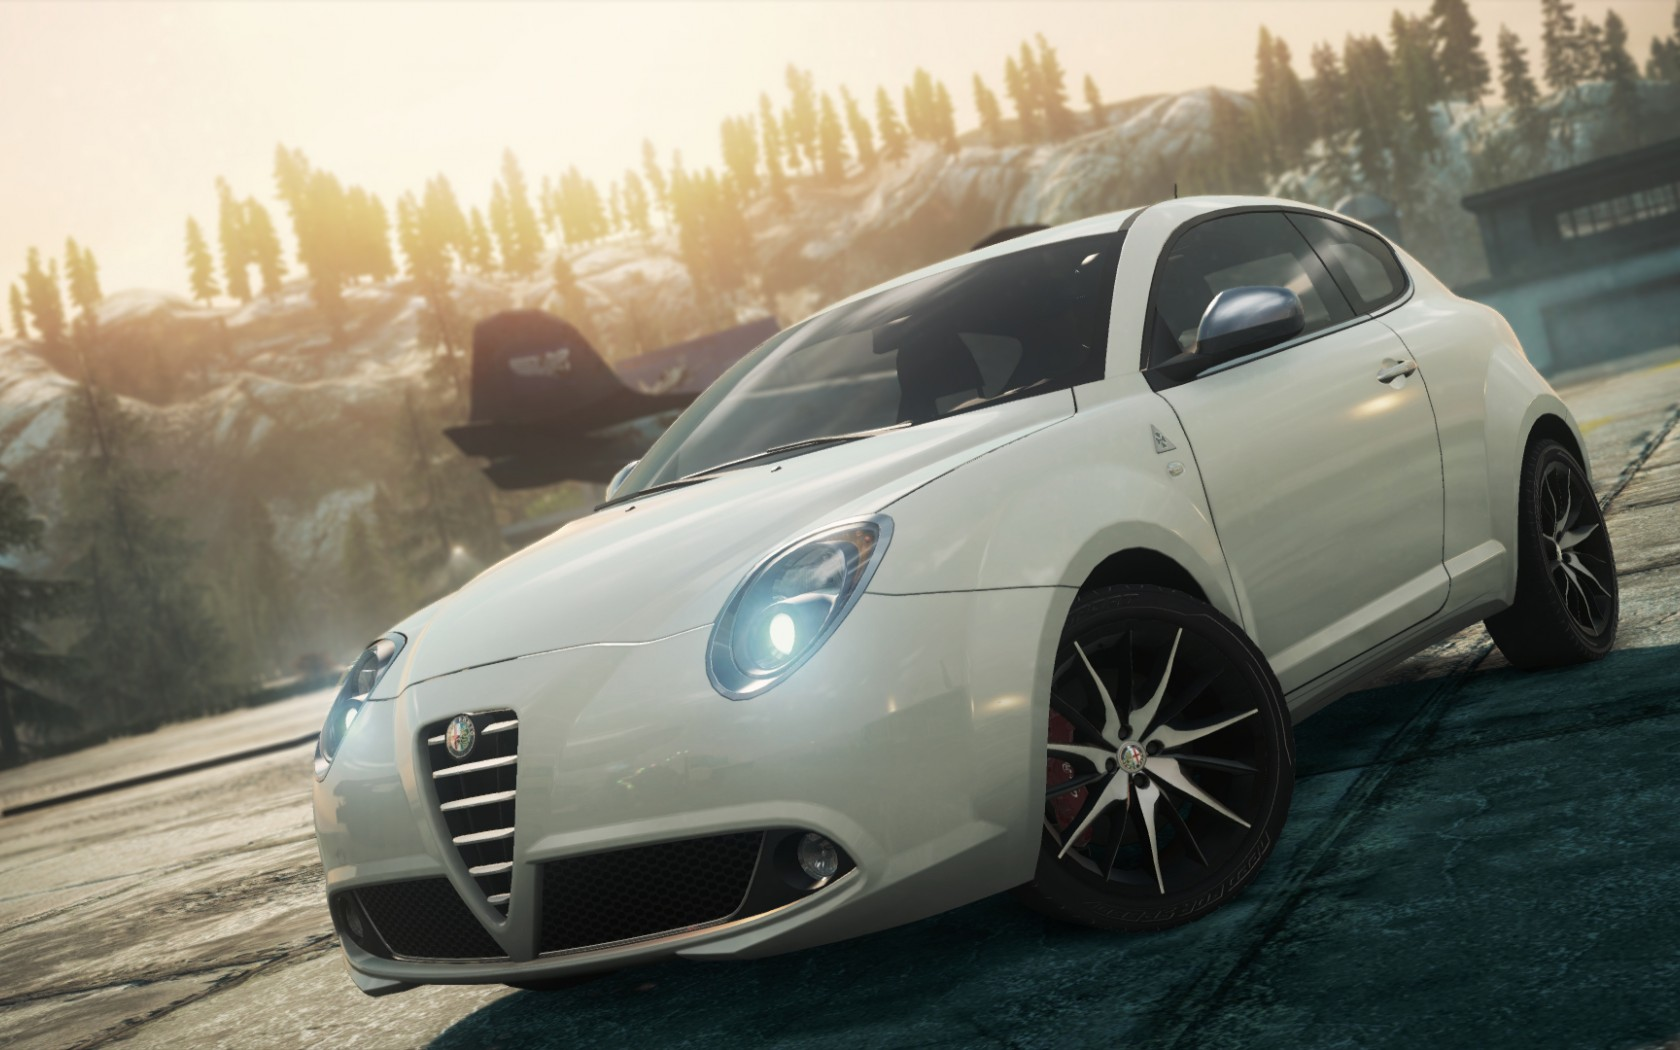 Need For Speed Most Wanted 2 Need For Speed Alfa Romeo Wallpaper Hd Games 4k Wallpapers Images Photos And Background